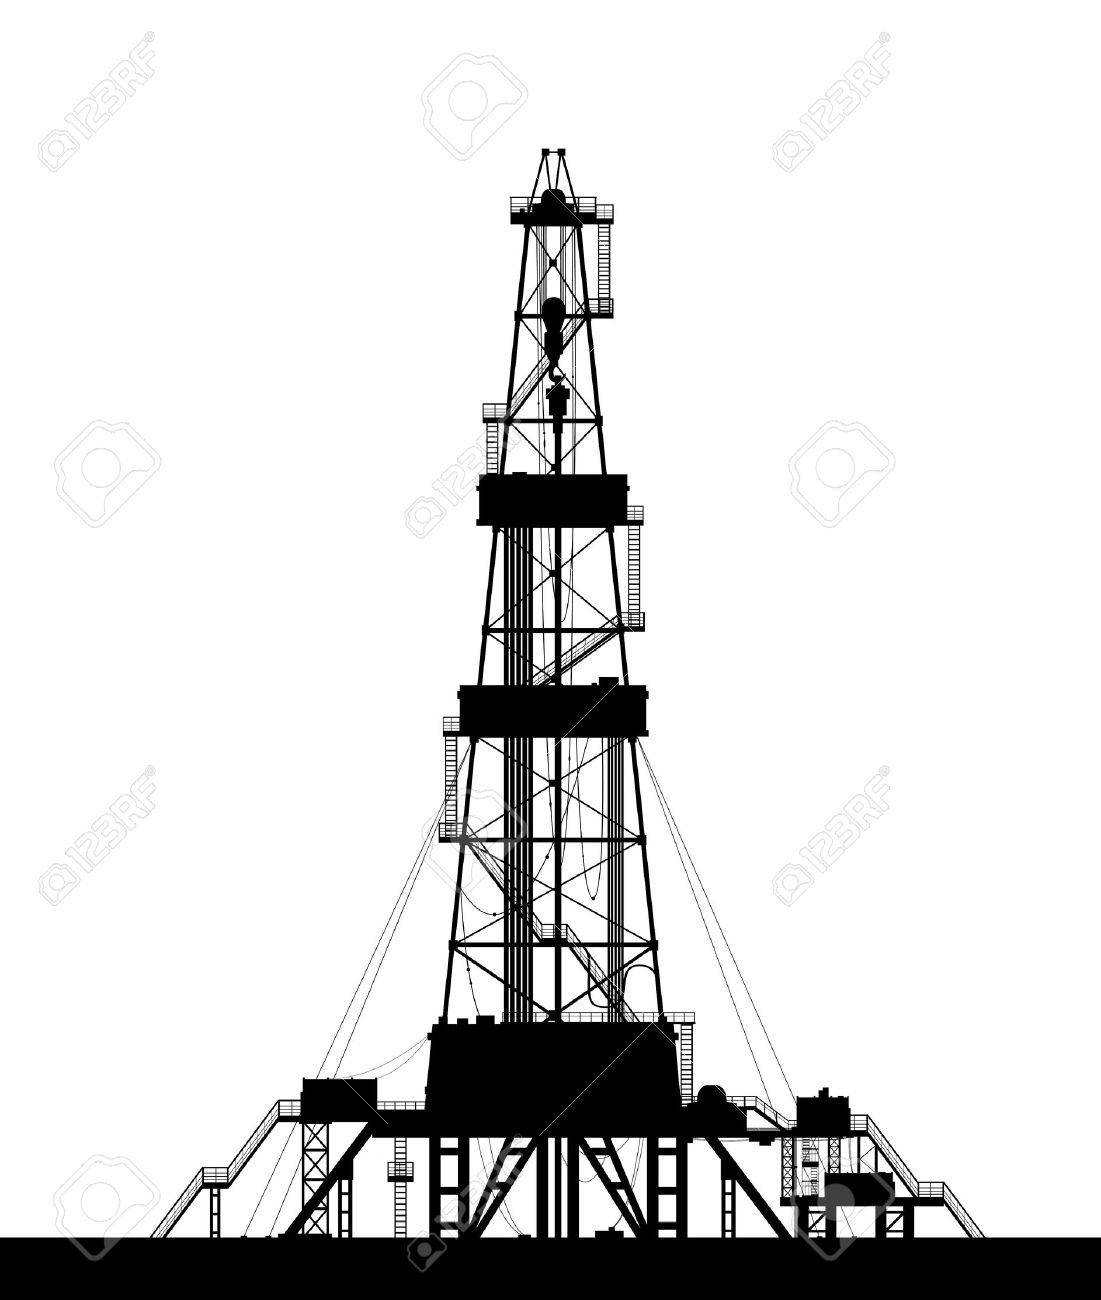 Oil rig silhouette. Detailed vector illustration isolated on white background. - 27987132